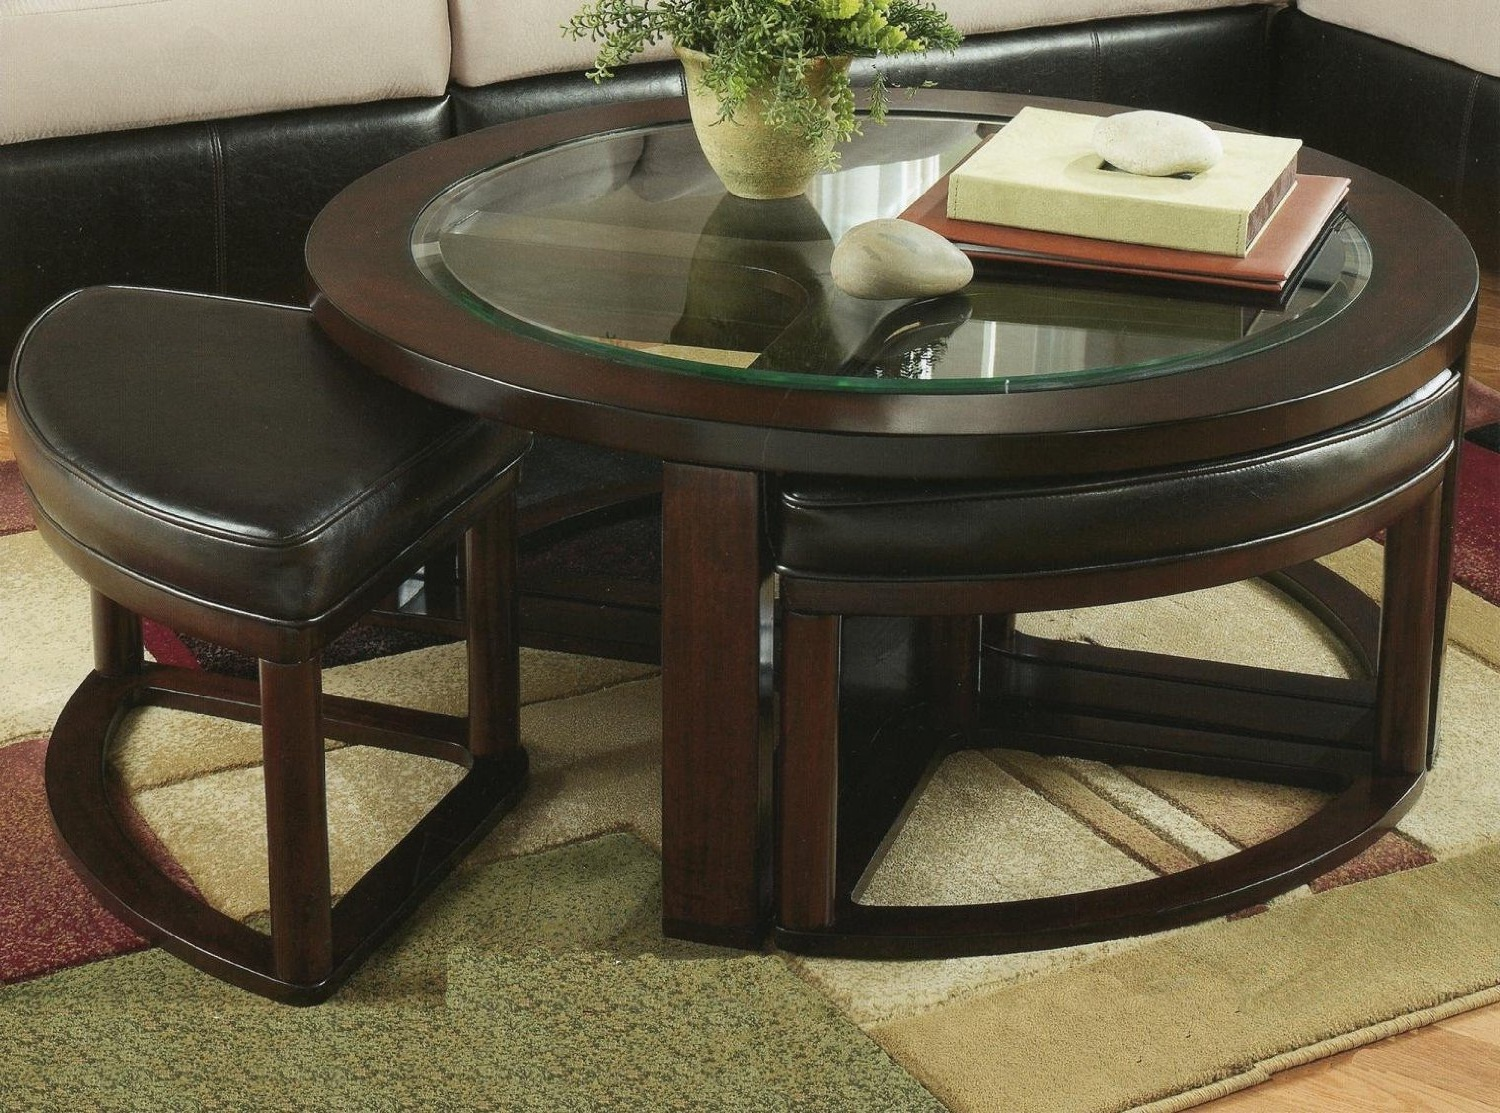 round coffee table with chairs furniture row top wood roundhill cylina solid glass stools underneath and end tables garage office dining black brown ashley living room suit ethan